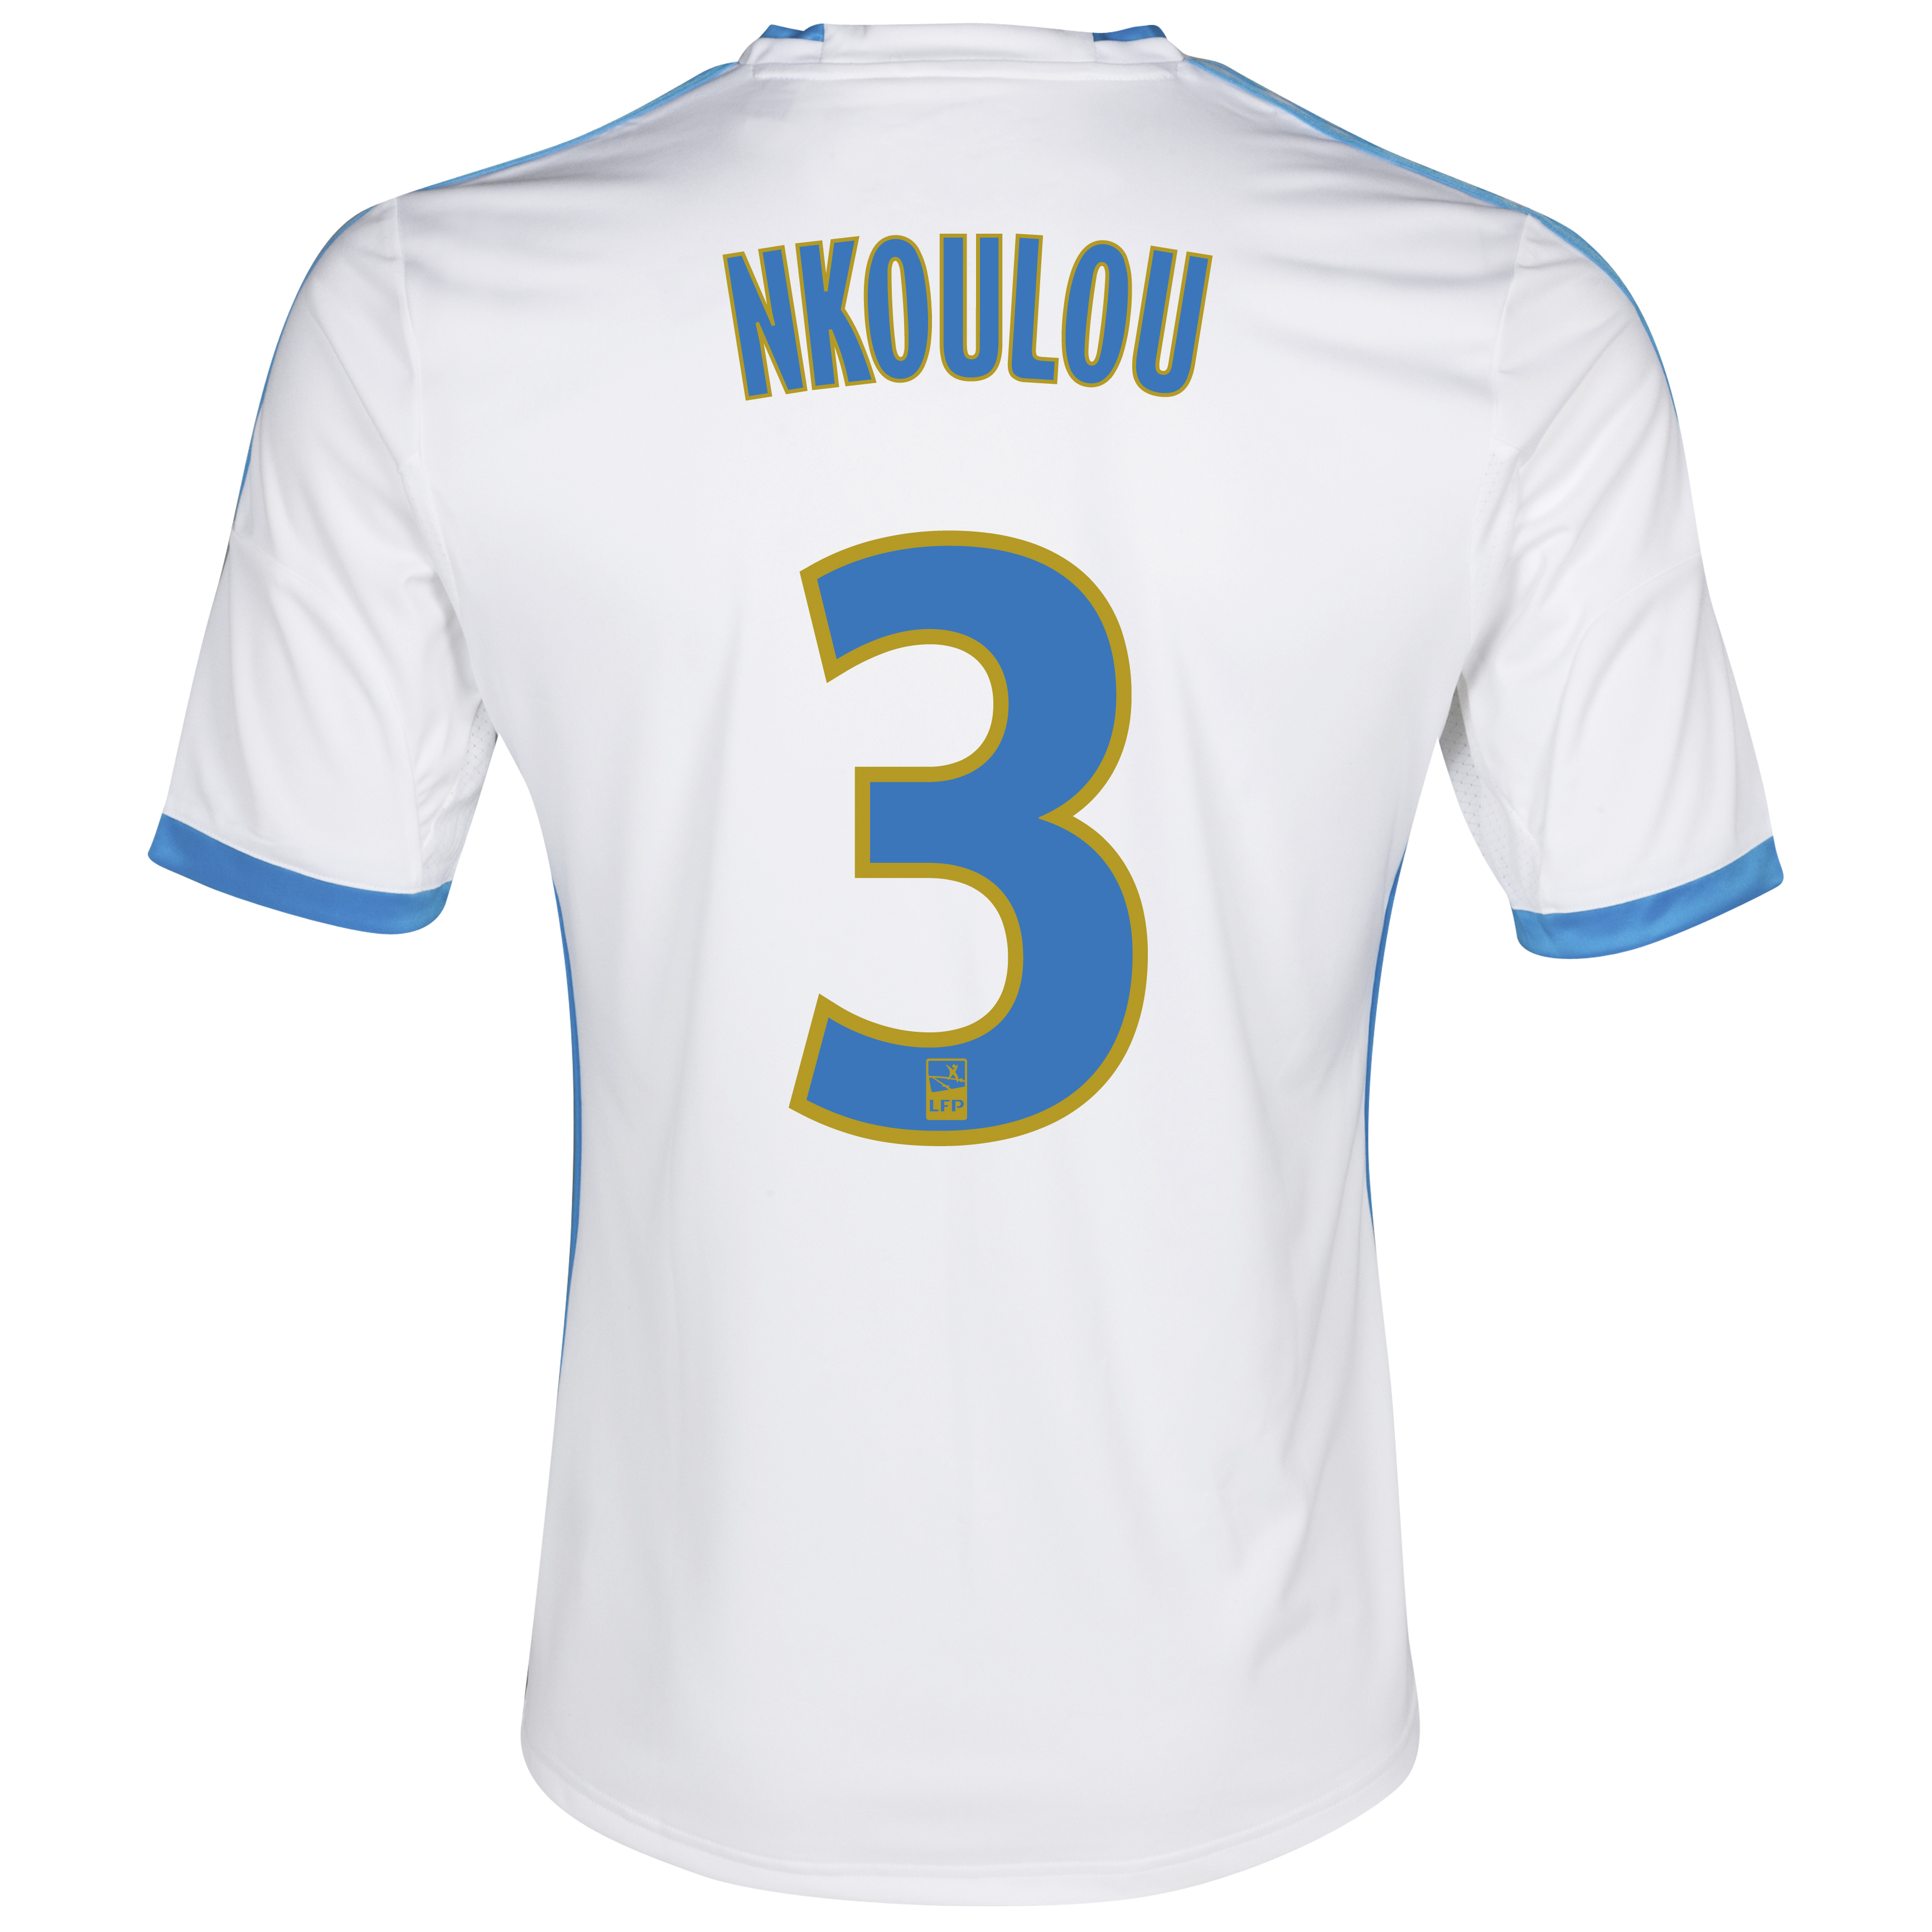 Olympique de Marseille Home Shirt SS 2013/14 - Kids White with Nkoulou 3 printing